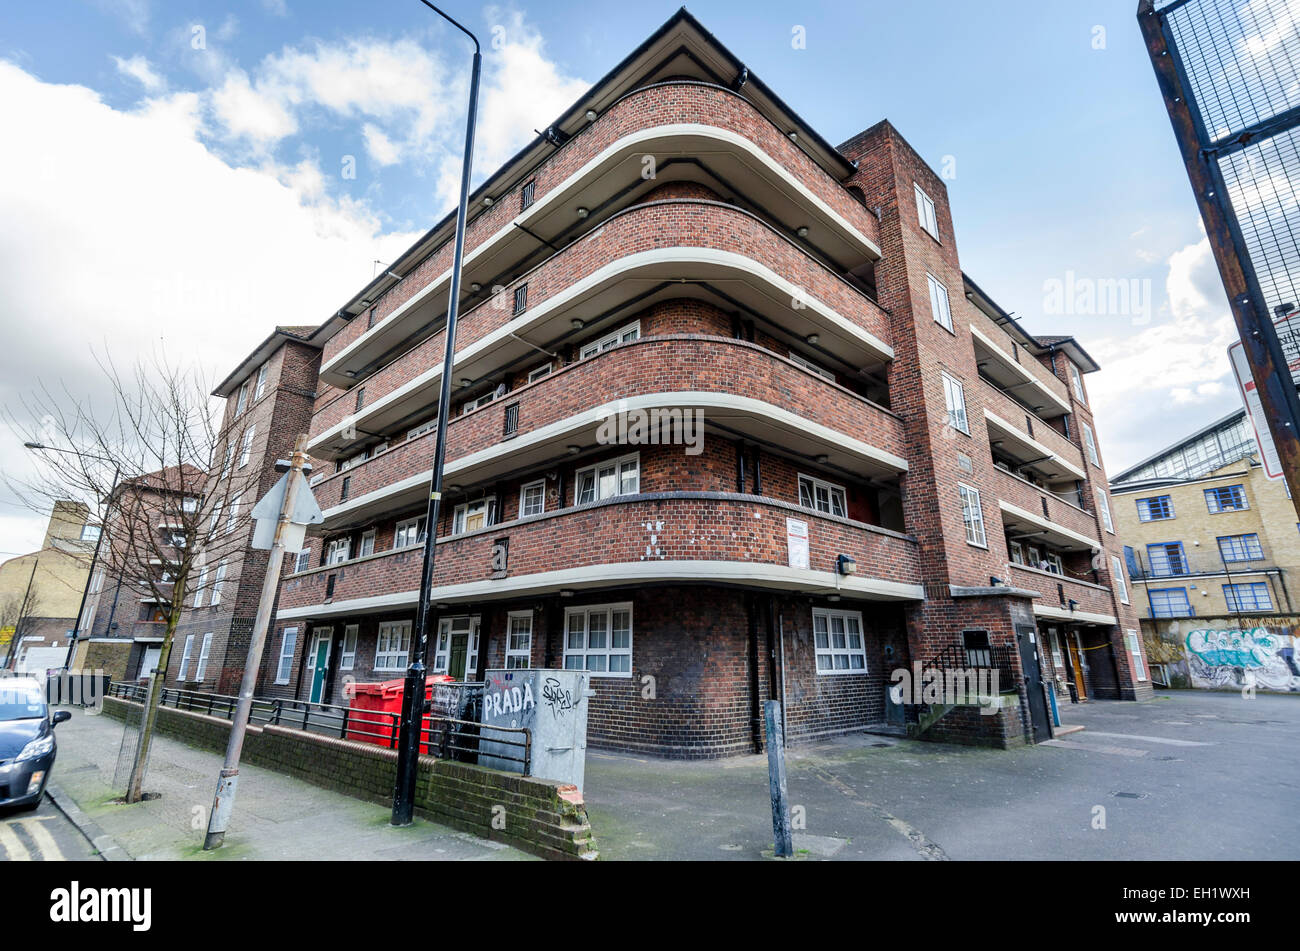 Social housing on Quaker Street in the Shoreditch area of East London - Stock Image